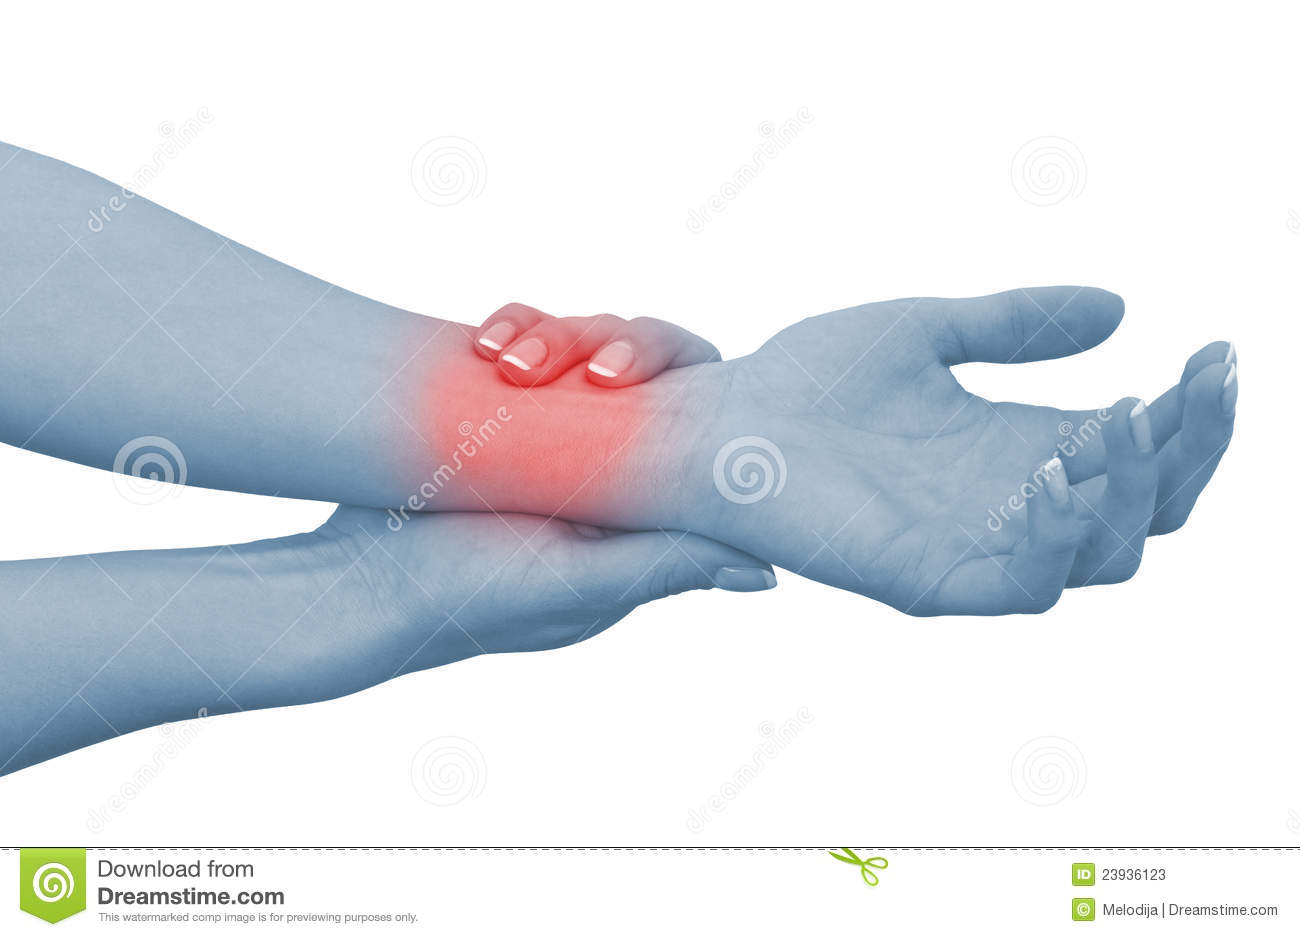 acute pain Read the latest articles of acute pain at sciencedirectcom, elsevier's leading platform of peer-reviewed scholarly literature.